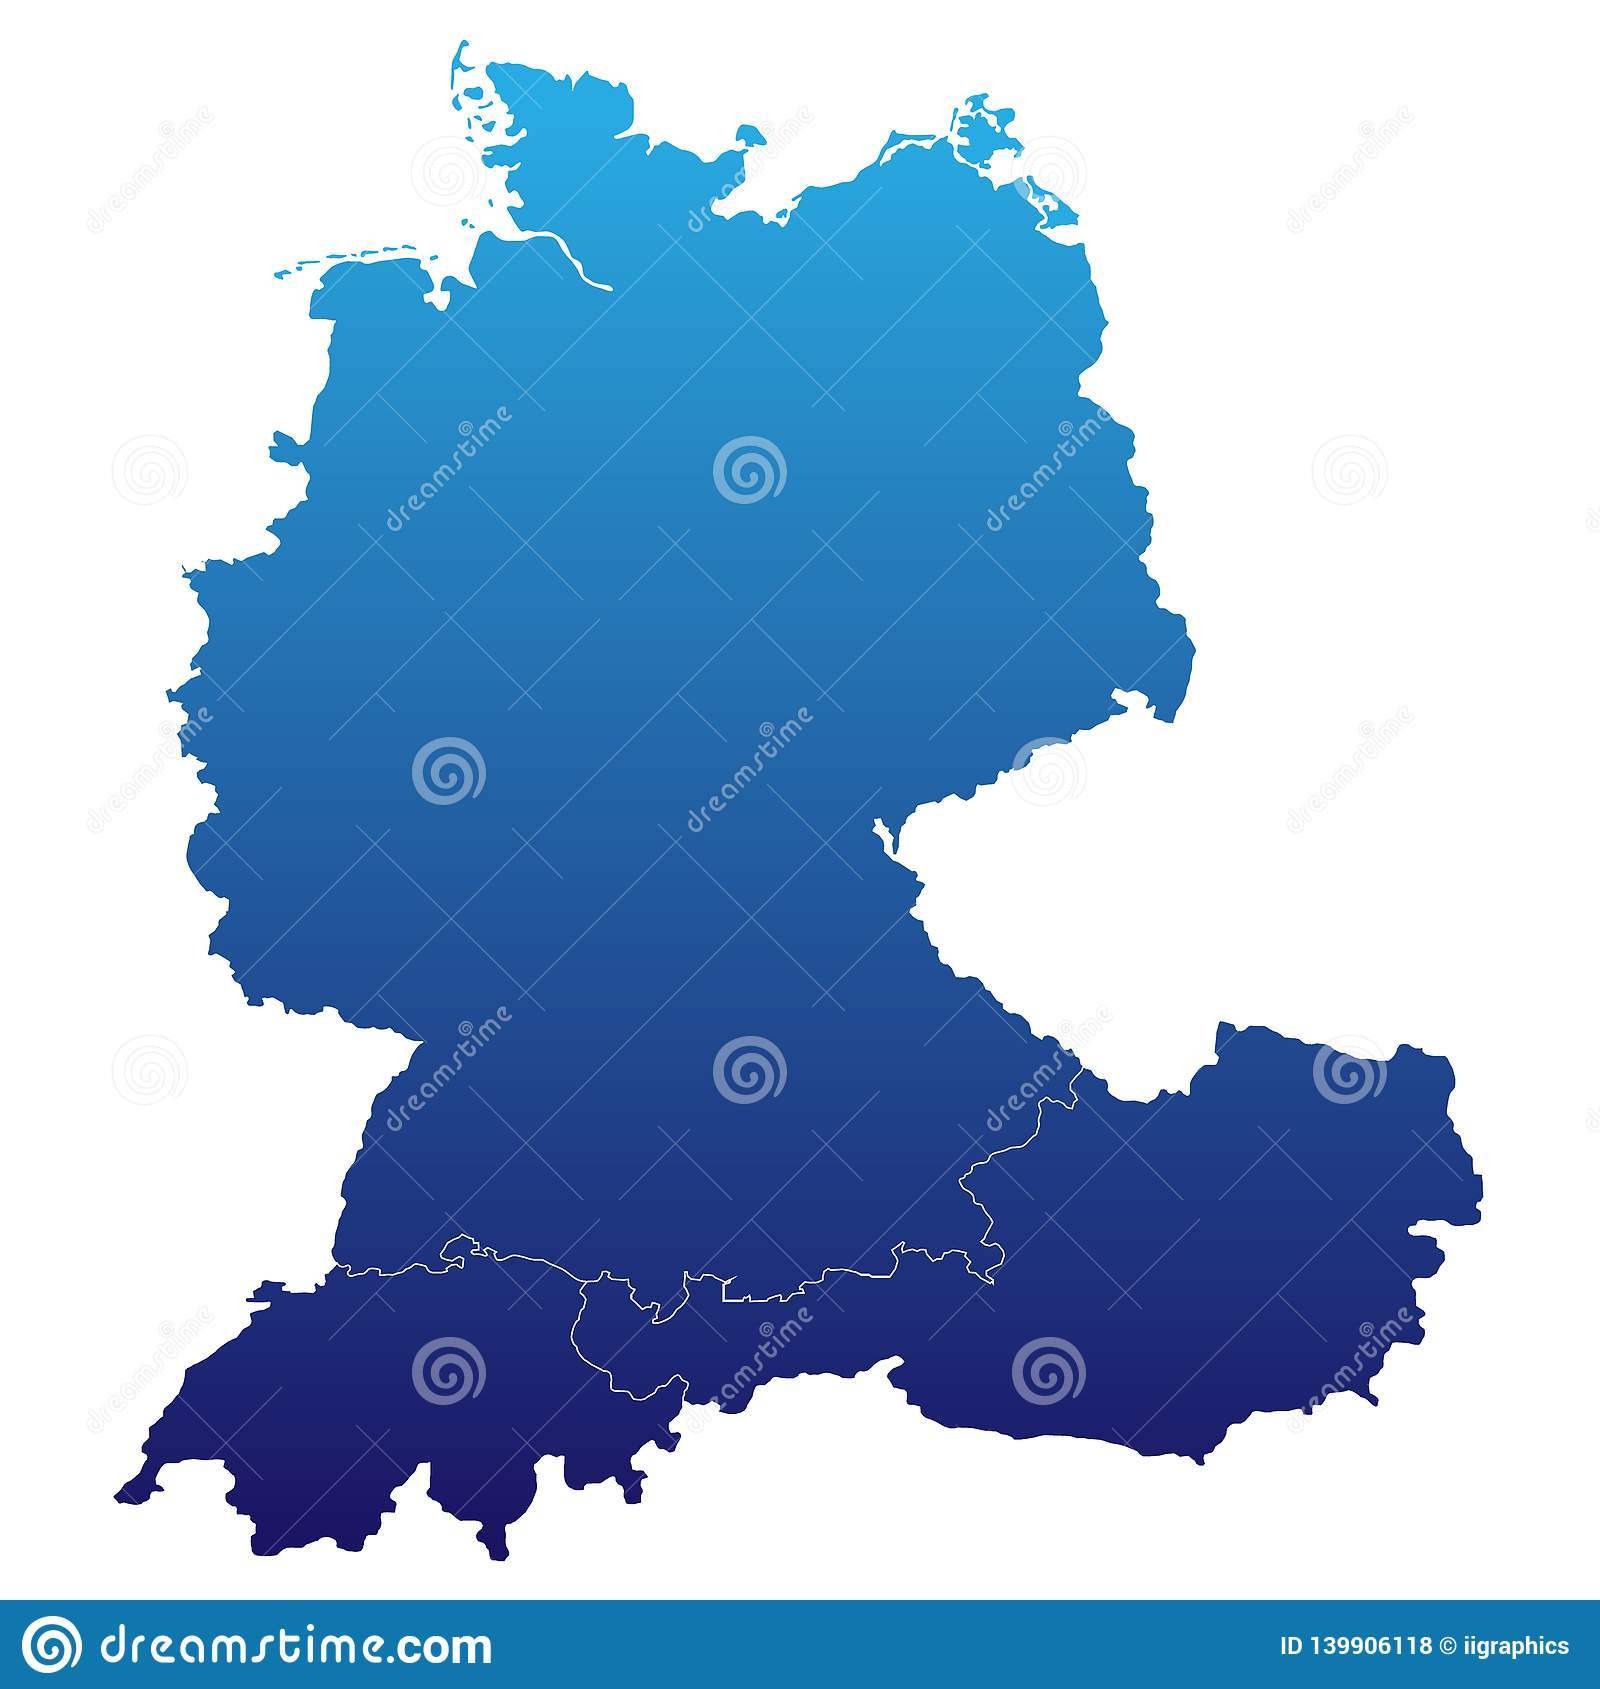 Map Of Germany, Austria And Switzerland Stock Illustration ...